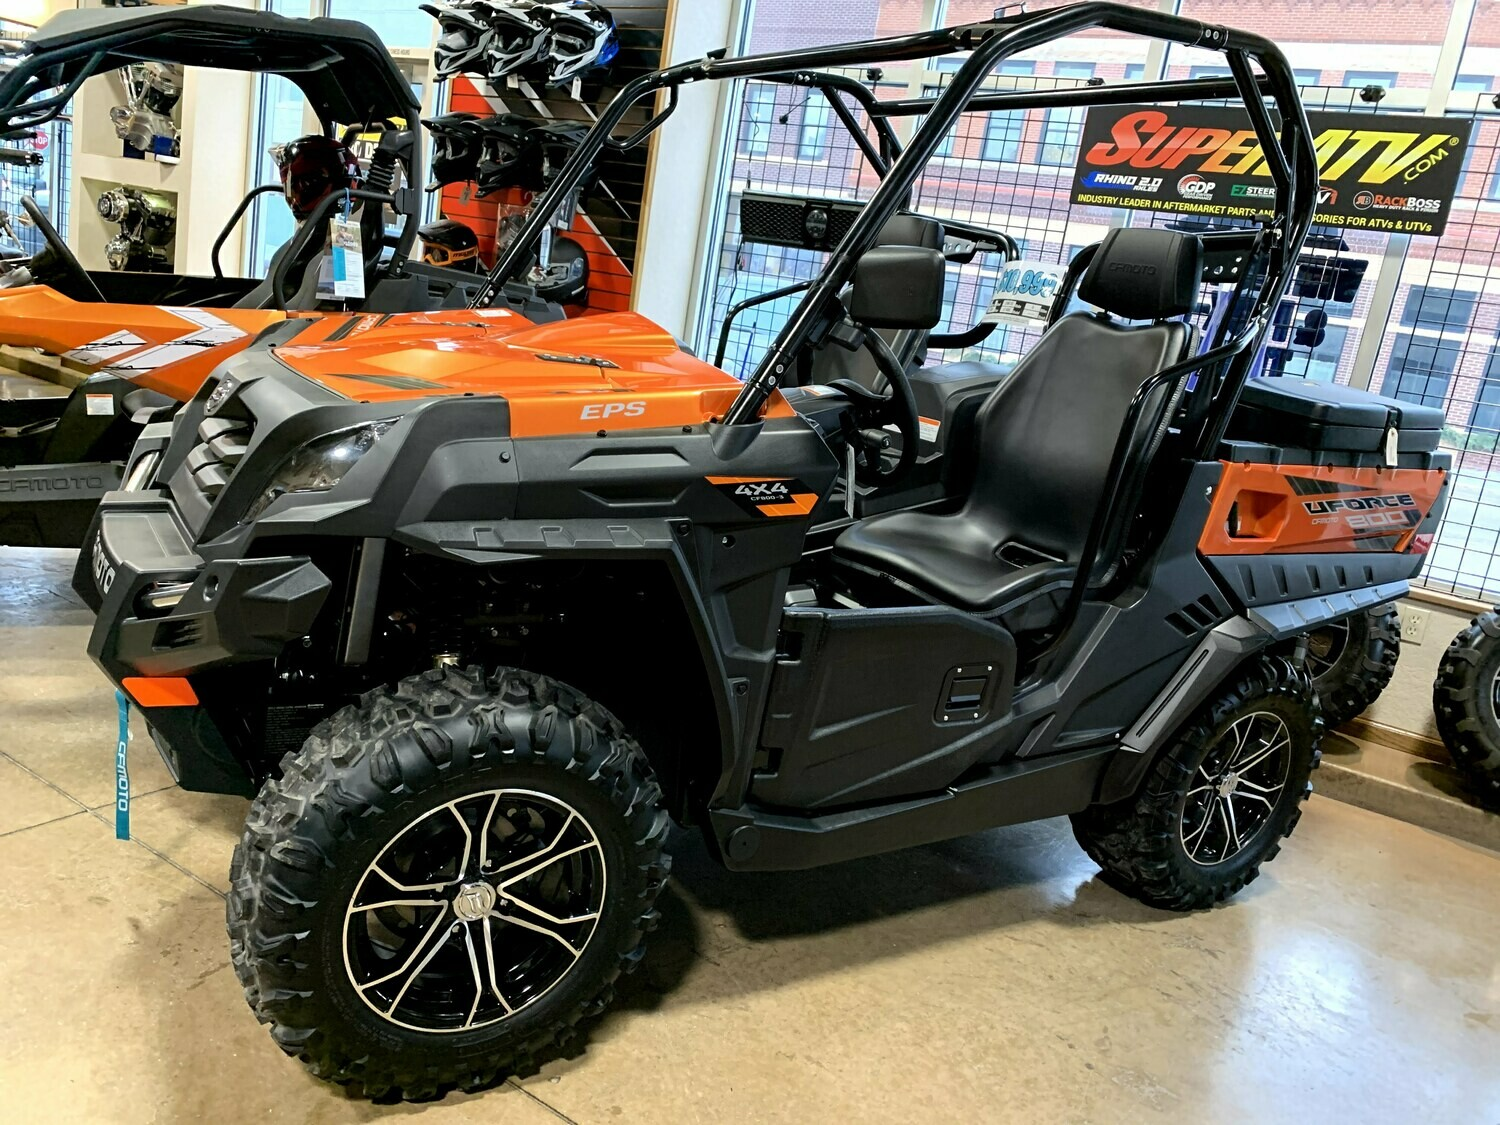 2019 CFMOTO UFORCE 800 EPS UTV 4x4 Orange